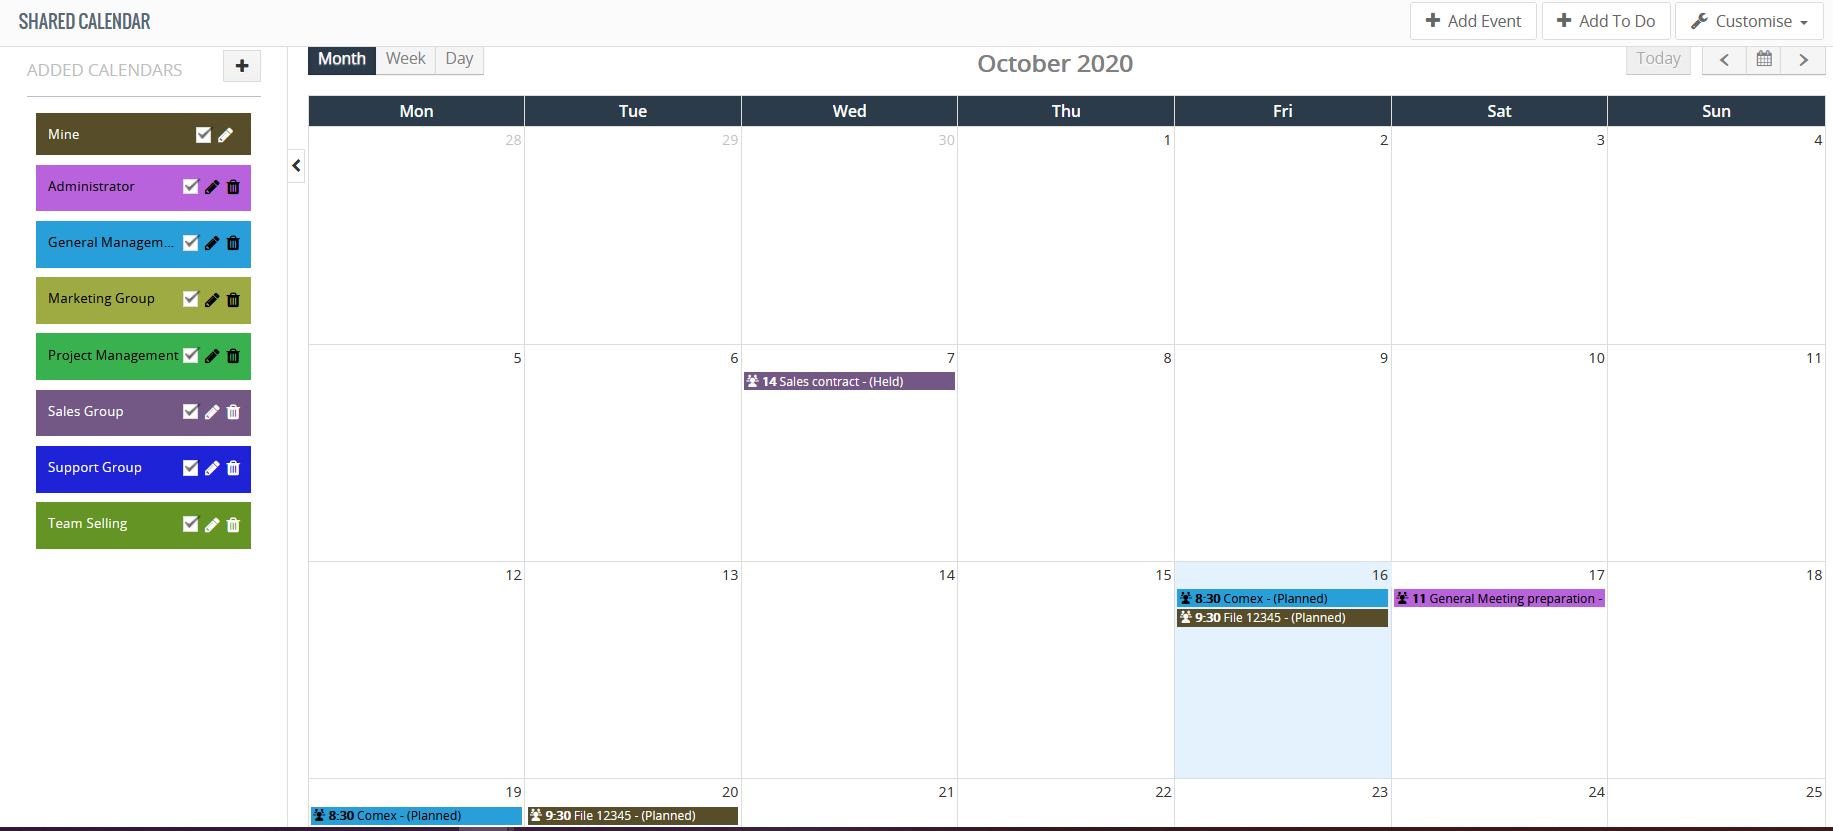 shared calendar month view